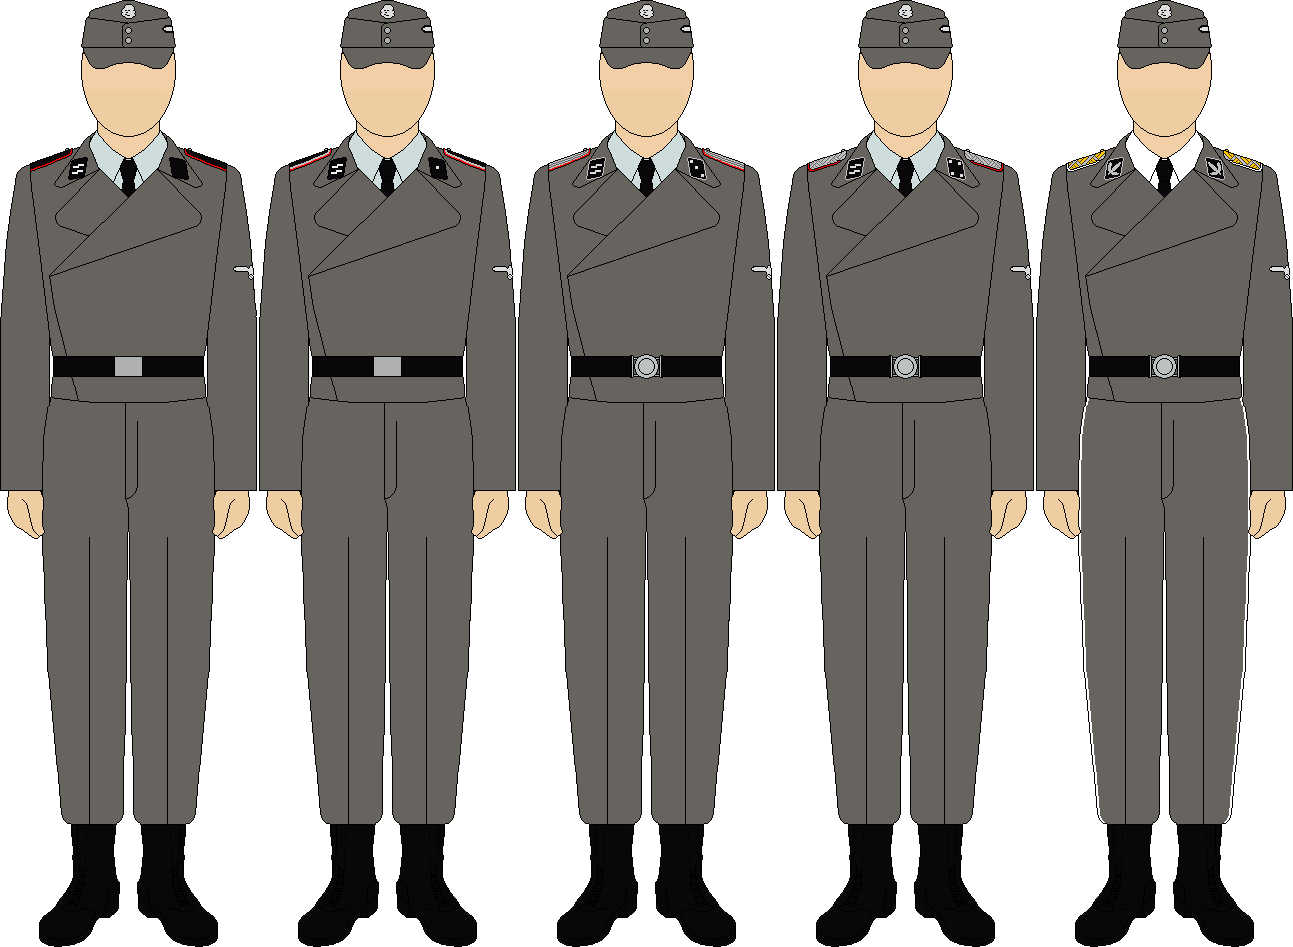 Waffen ss panzerartillerie troops everyday uniforms by thefalconette-d5be6pu